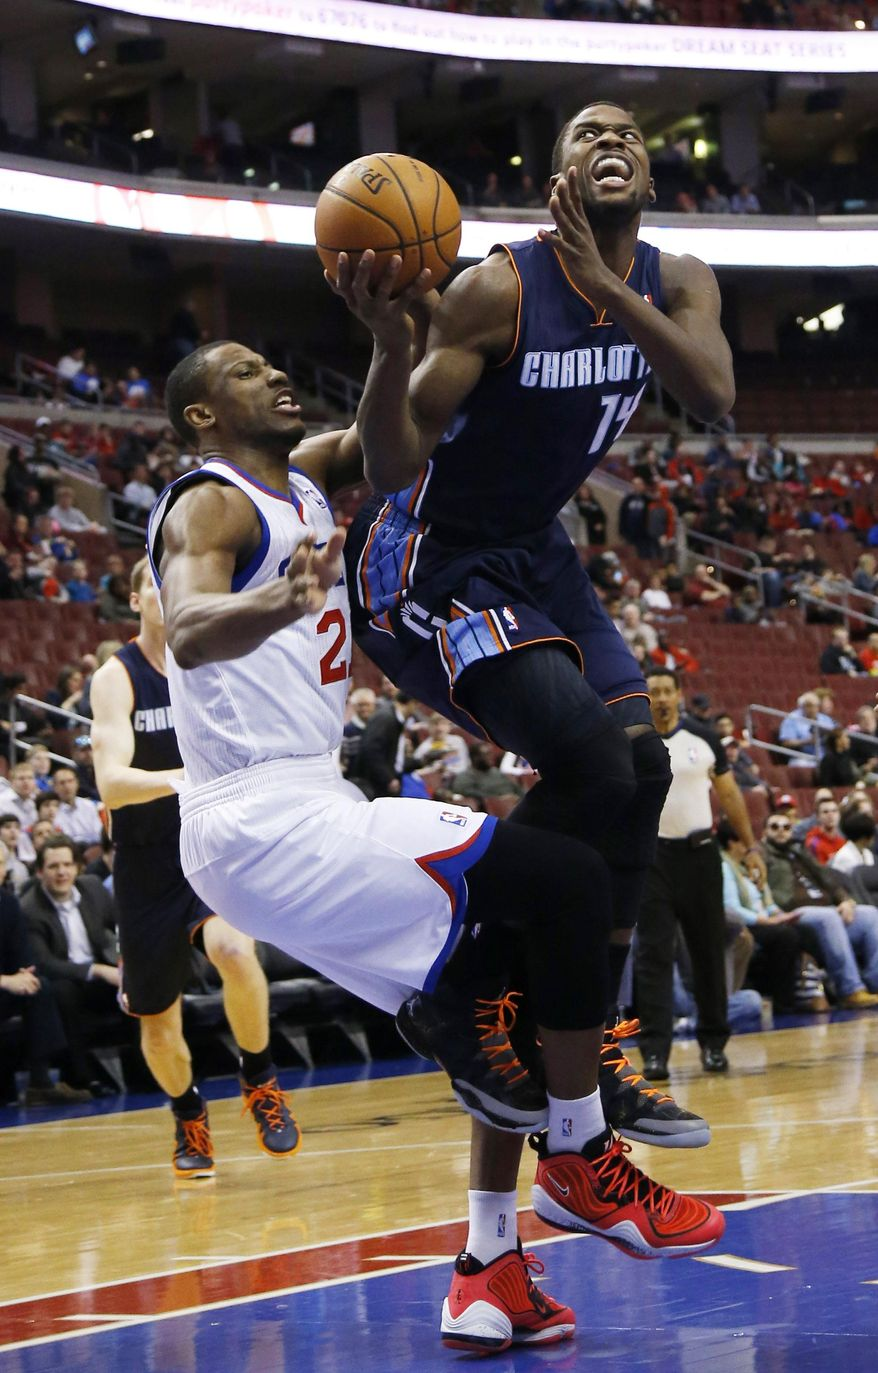 Charlotte Bobcats' Michael Kidd-Gilchrist, right, goes up for a shot after a foul by Philadelphia 76ers' Thaddeus Young during the first half of an NBA basketball game, Wednesday, April 2, 2014, in Philadelphia. (AP Photo/Matt Slocum)